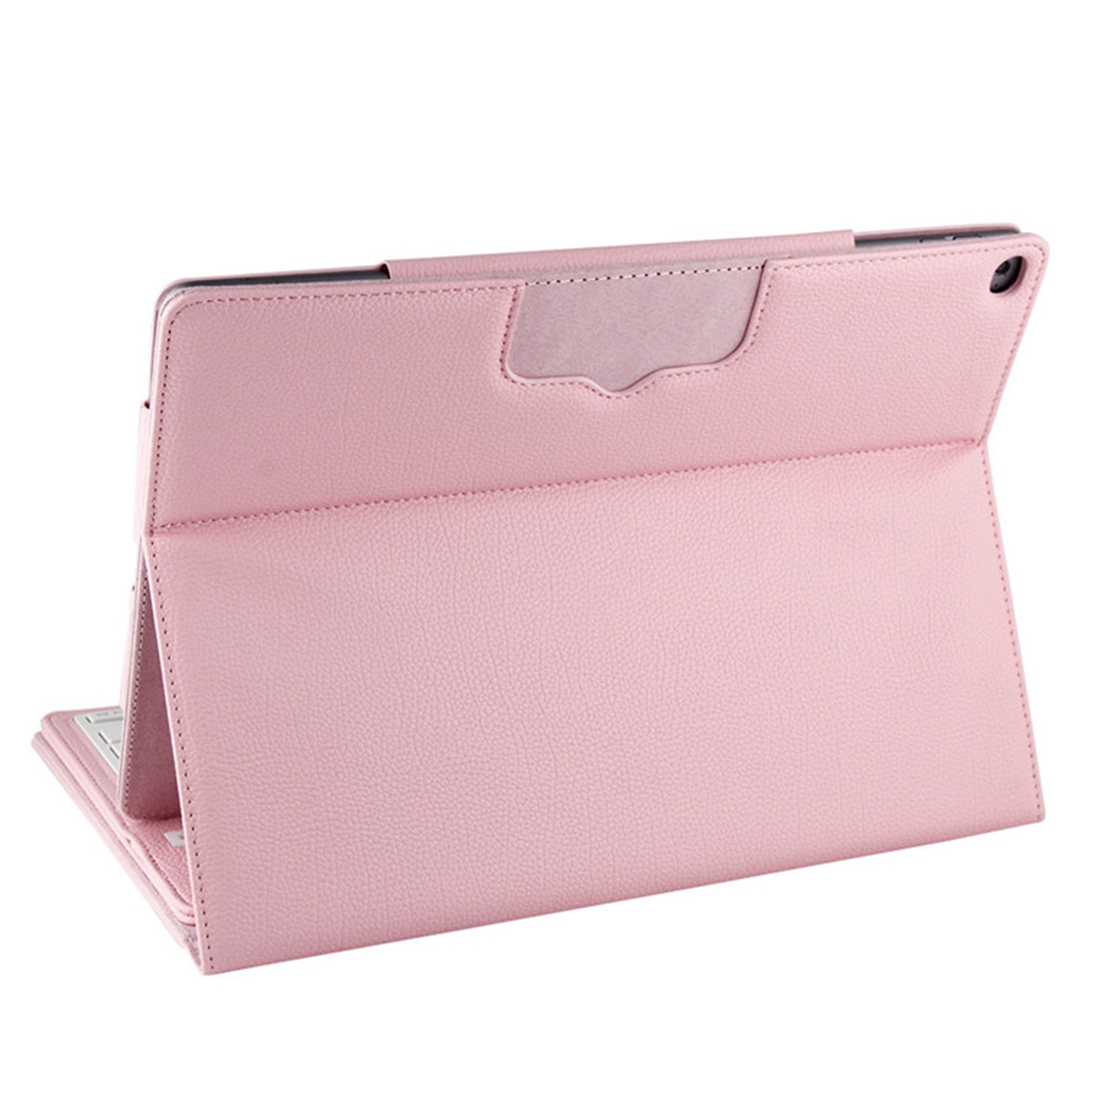 iPad Pro 12.9 Case With Keyboard (2015-17) With Leather Case & Detachable Keyboard (Pink)